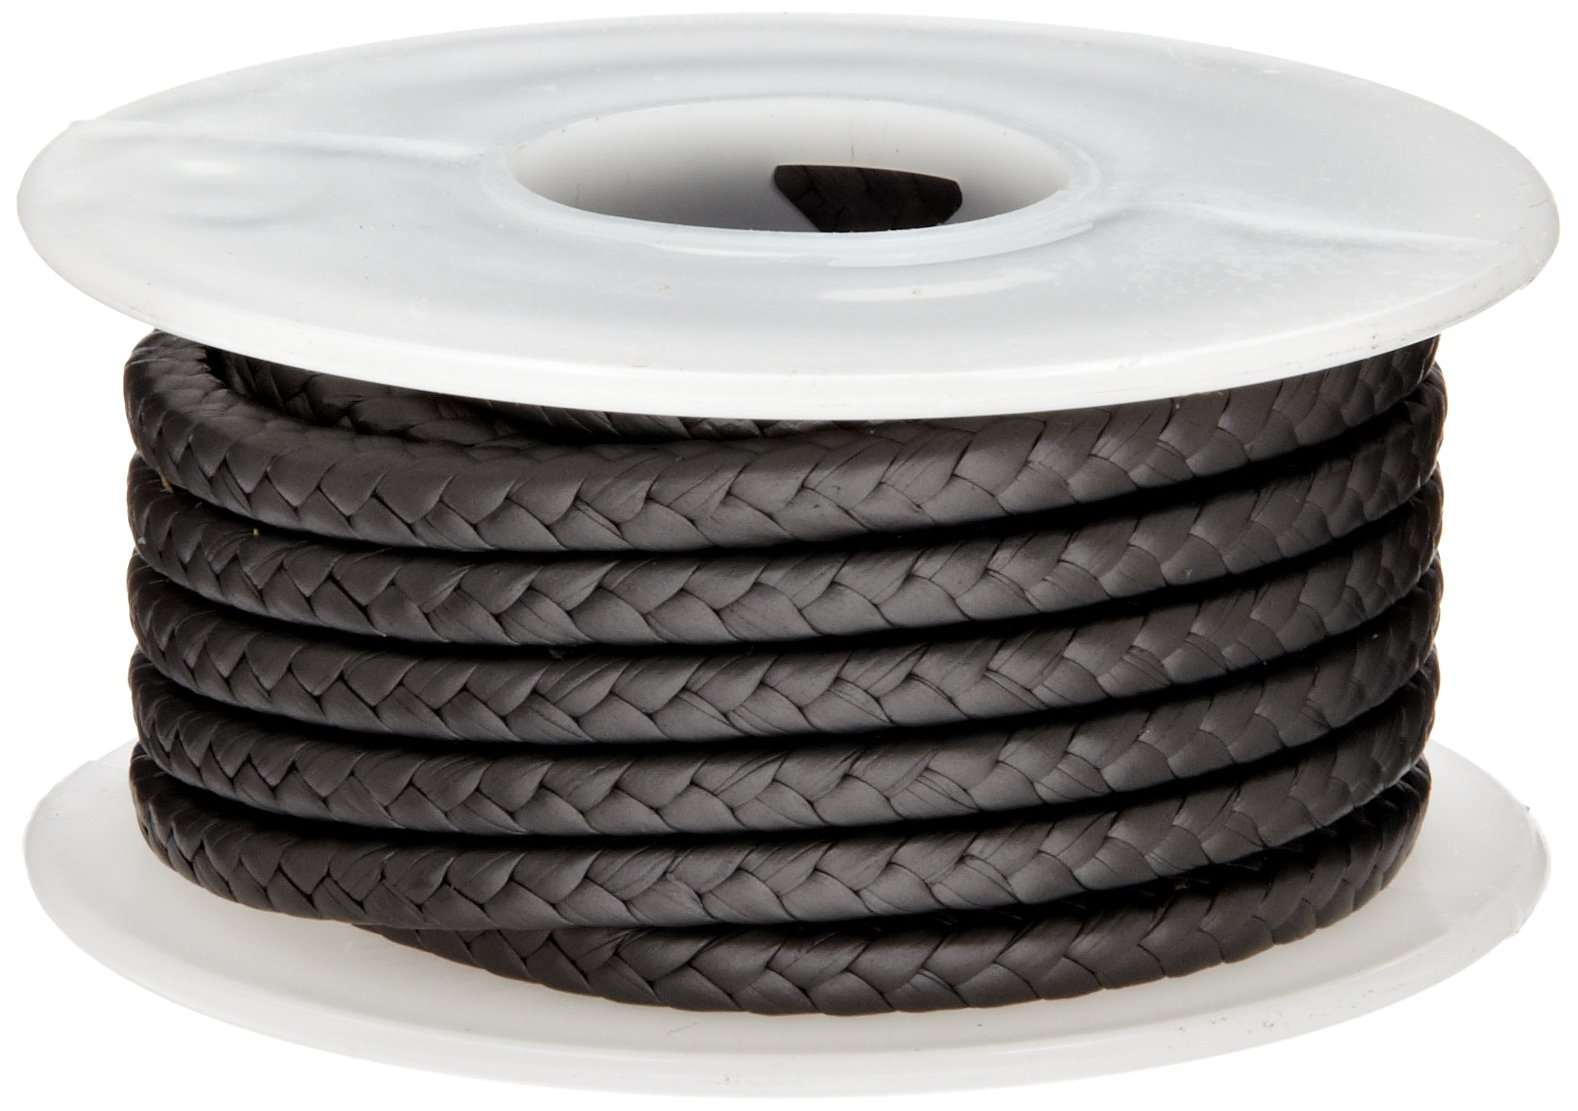 Palmetto 1382 Series Expanded PTFE with Graphite Compression Packing Seal, Dull Black, 1/4'' Square, 5' Length by Palmetto Packings